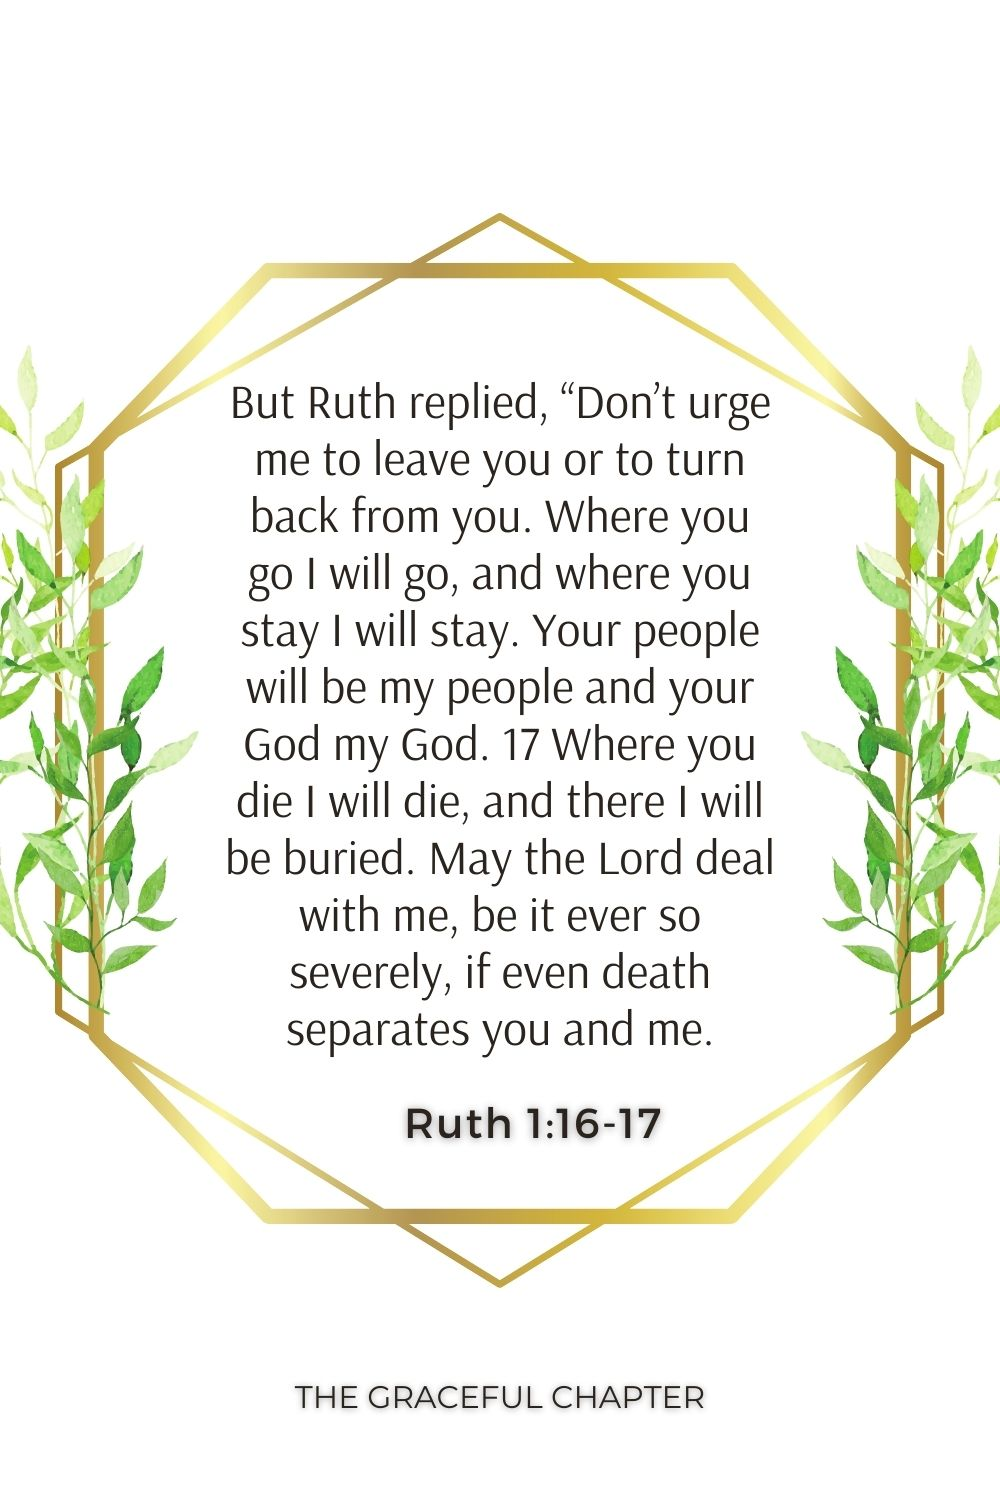 """But Ruth replied, """"Don't urge me to leave you or to turn back from you. Where you go I will go, and where you stay I will stay. Your people will be my people and your God my God. 17 Where you die I will die, and there I will be buried. May the Lord deal with me, be it ever so severely, if even death separates you and me. Ruth 1:16-17"""